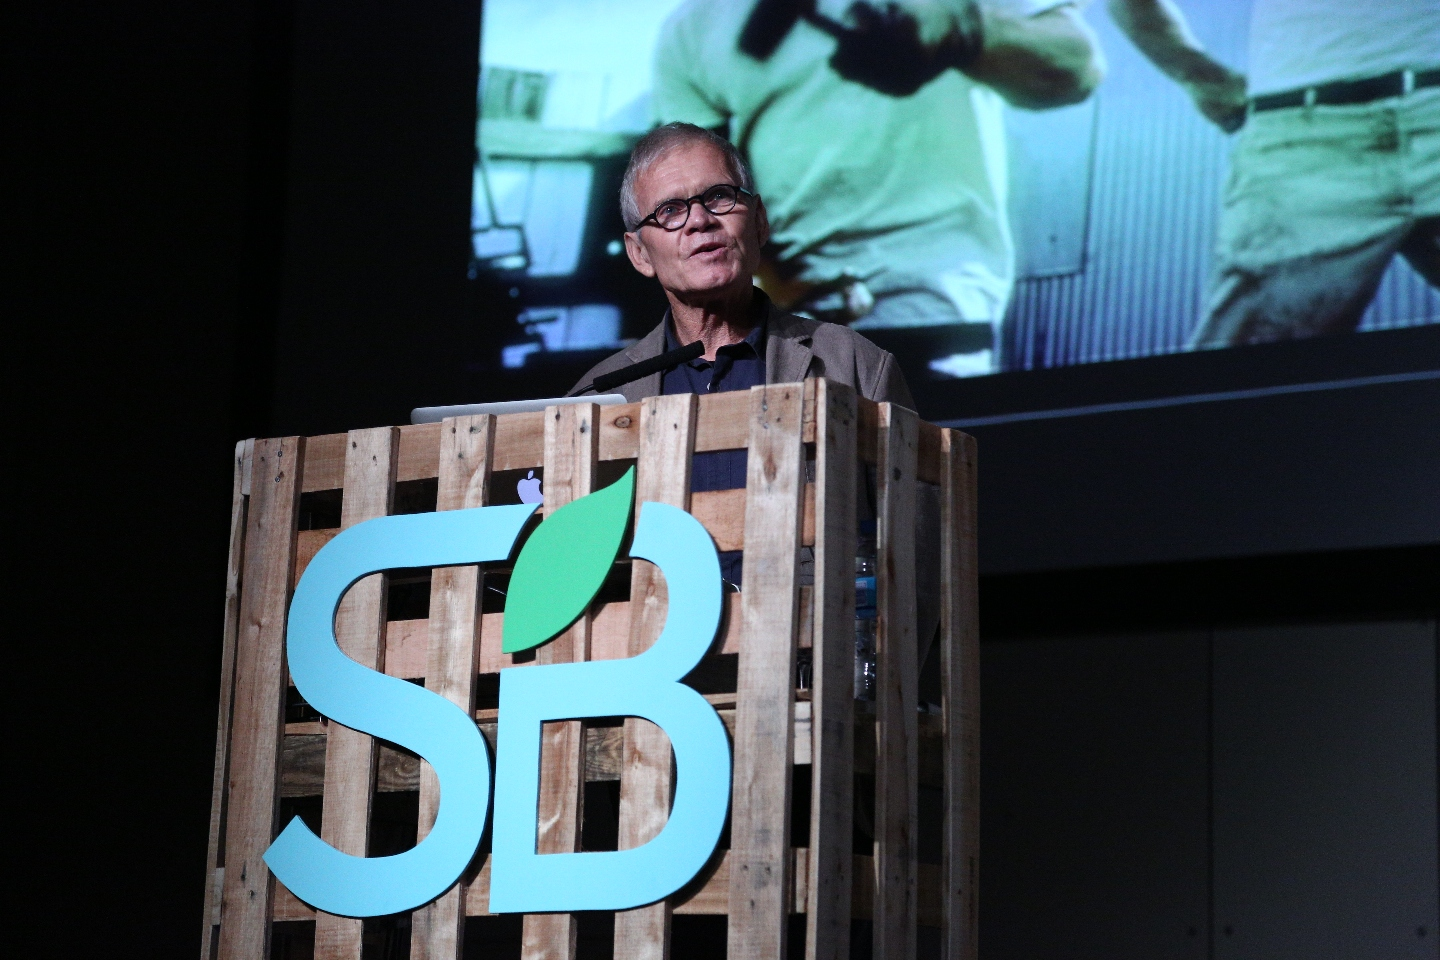 Photo: Rick Ridgeway of Patagonia speaking at SB Buenos Aires 2014